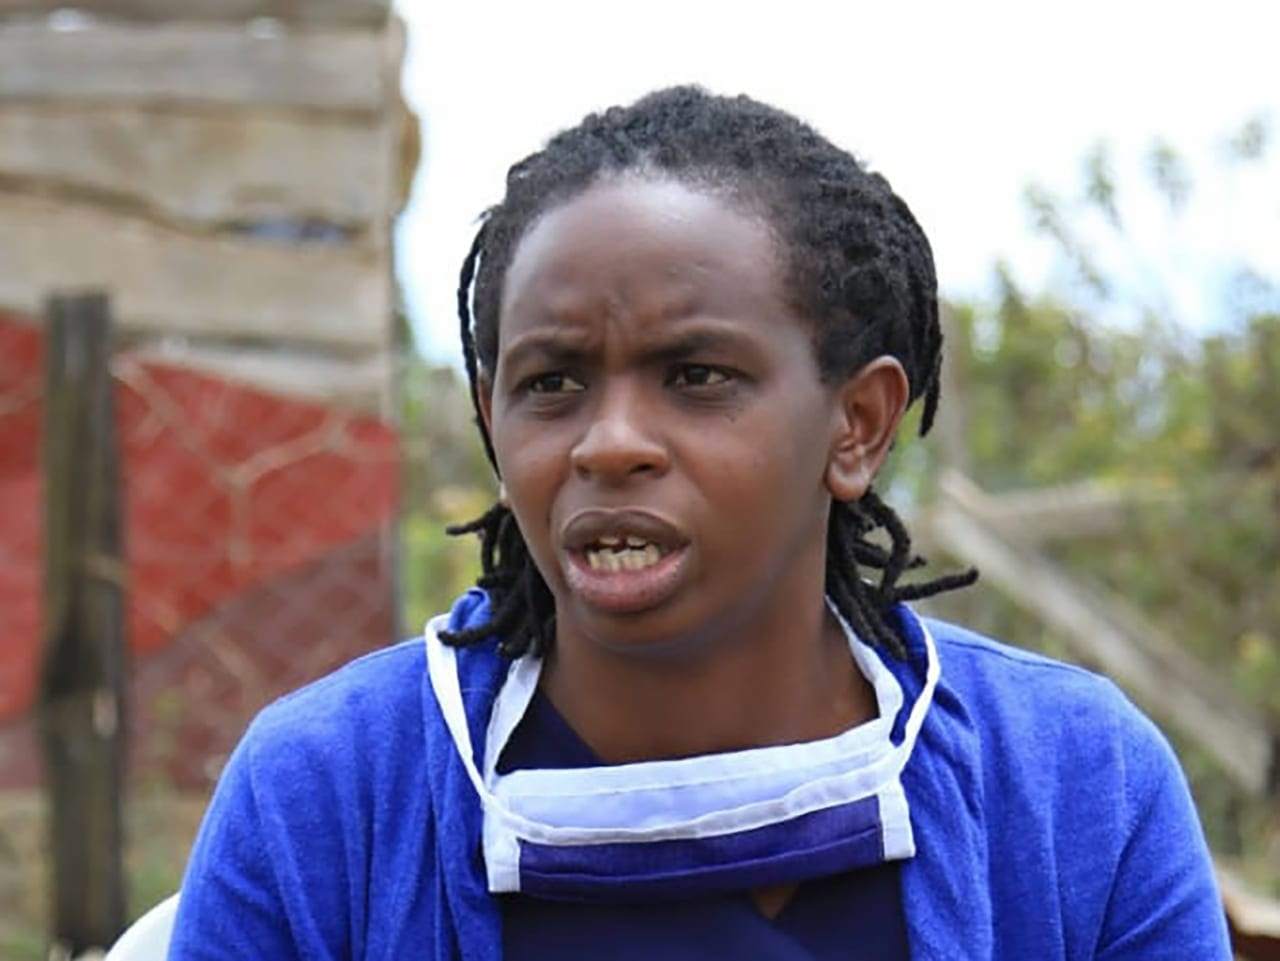 Elizabeth Muriuki was a teen mother in Kenya who helps young women in Kenya through Serene Haven Secondary School